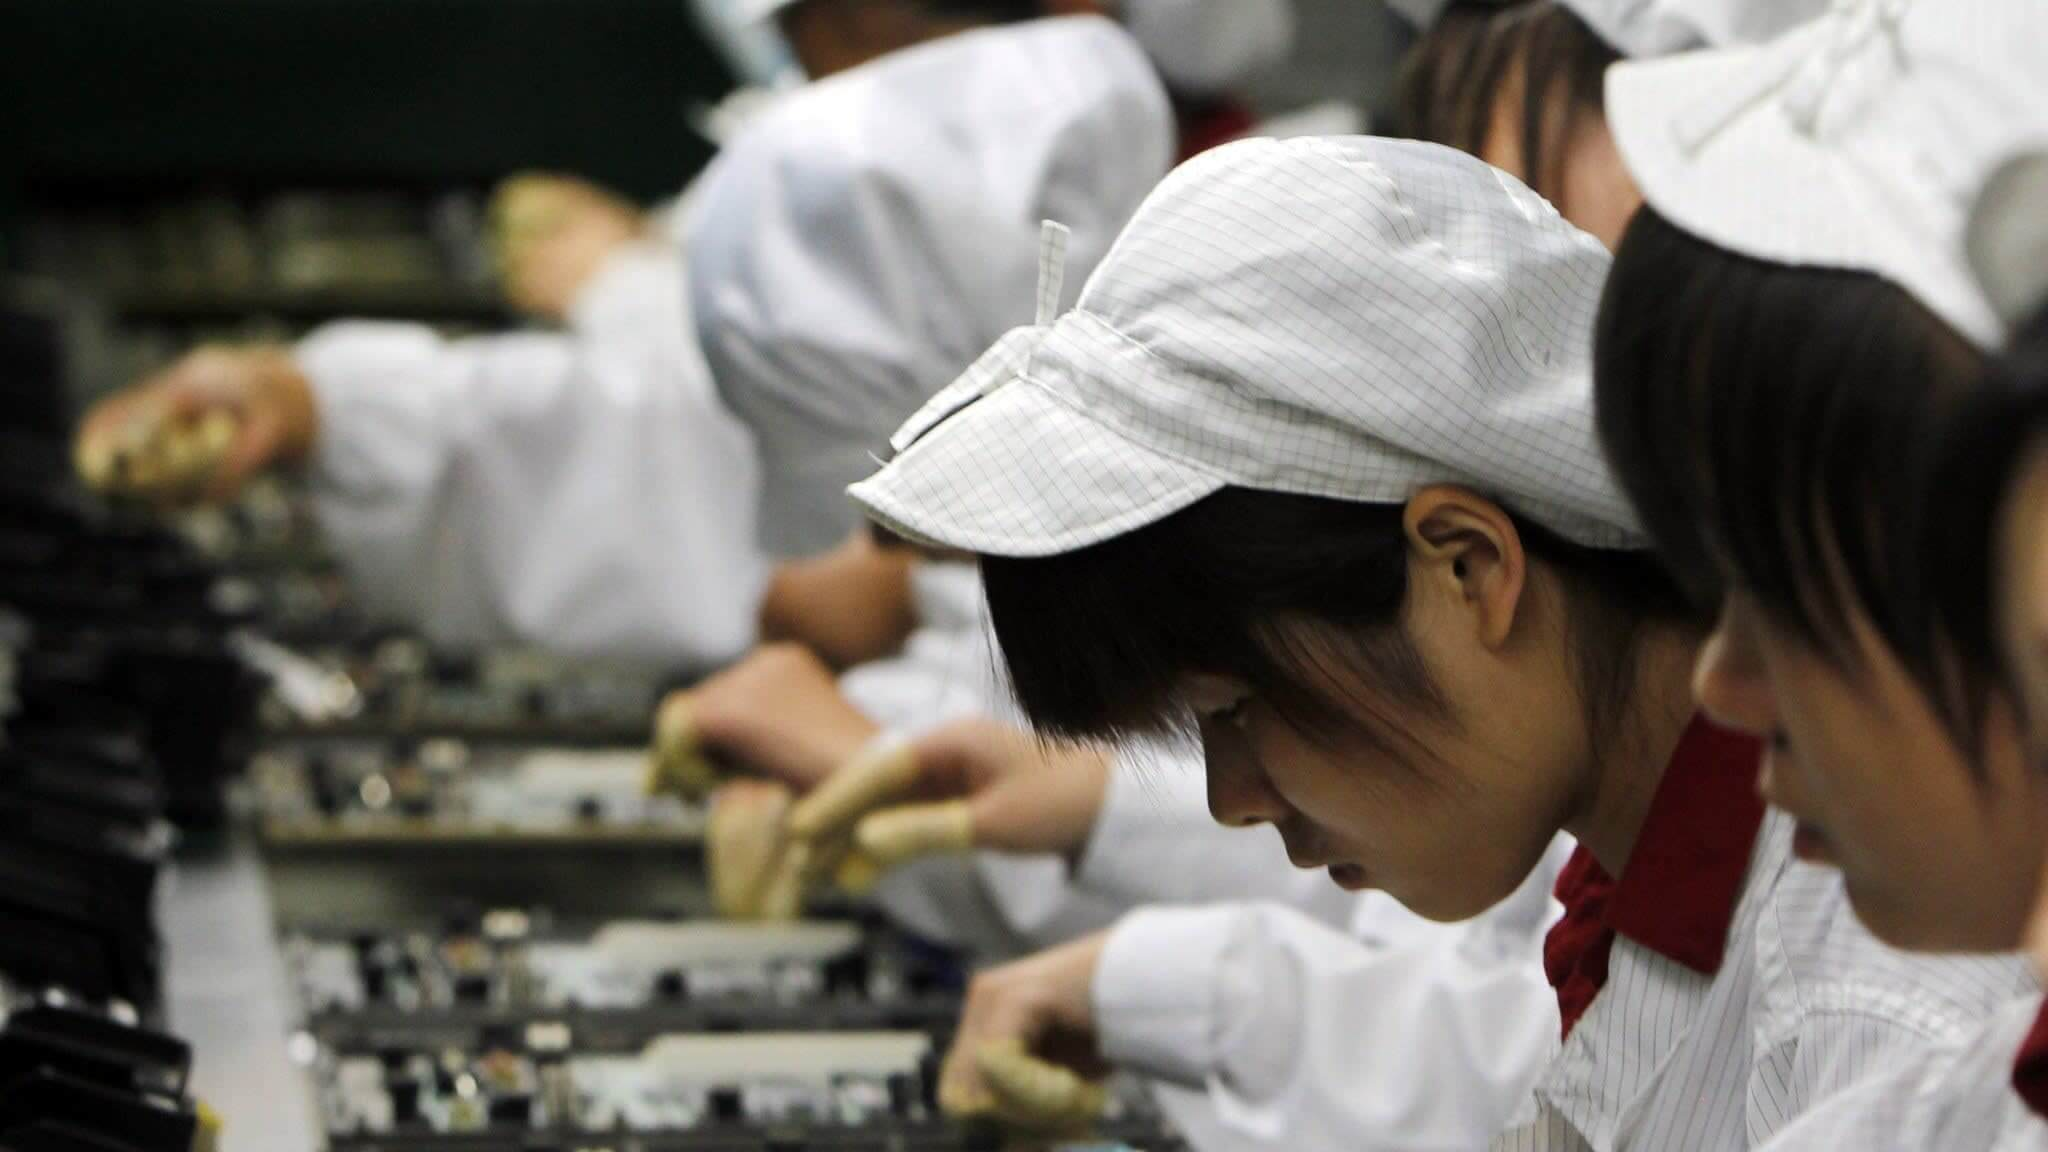 Your next iPhone might come from Vietnam as manufacturers seek to avoid trade war fallout